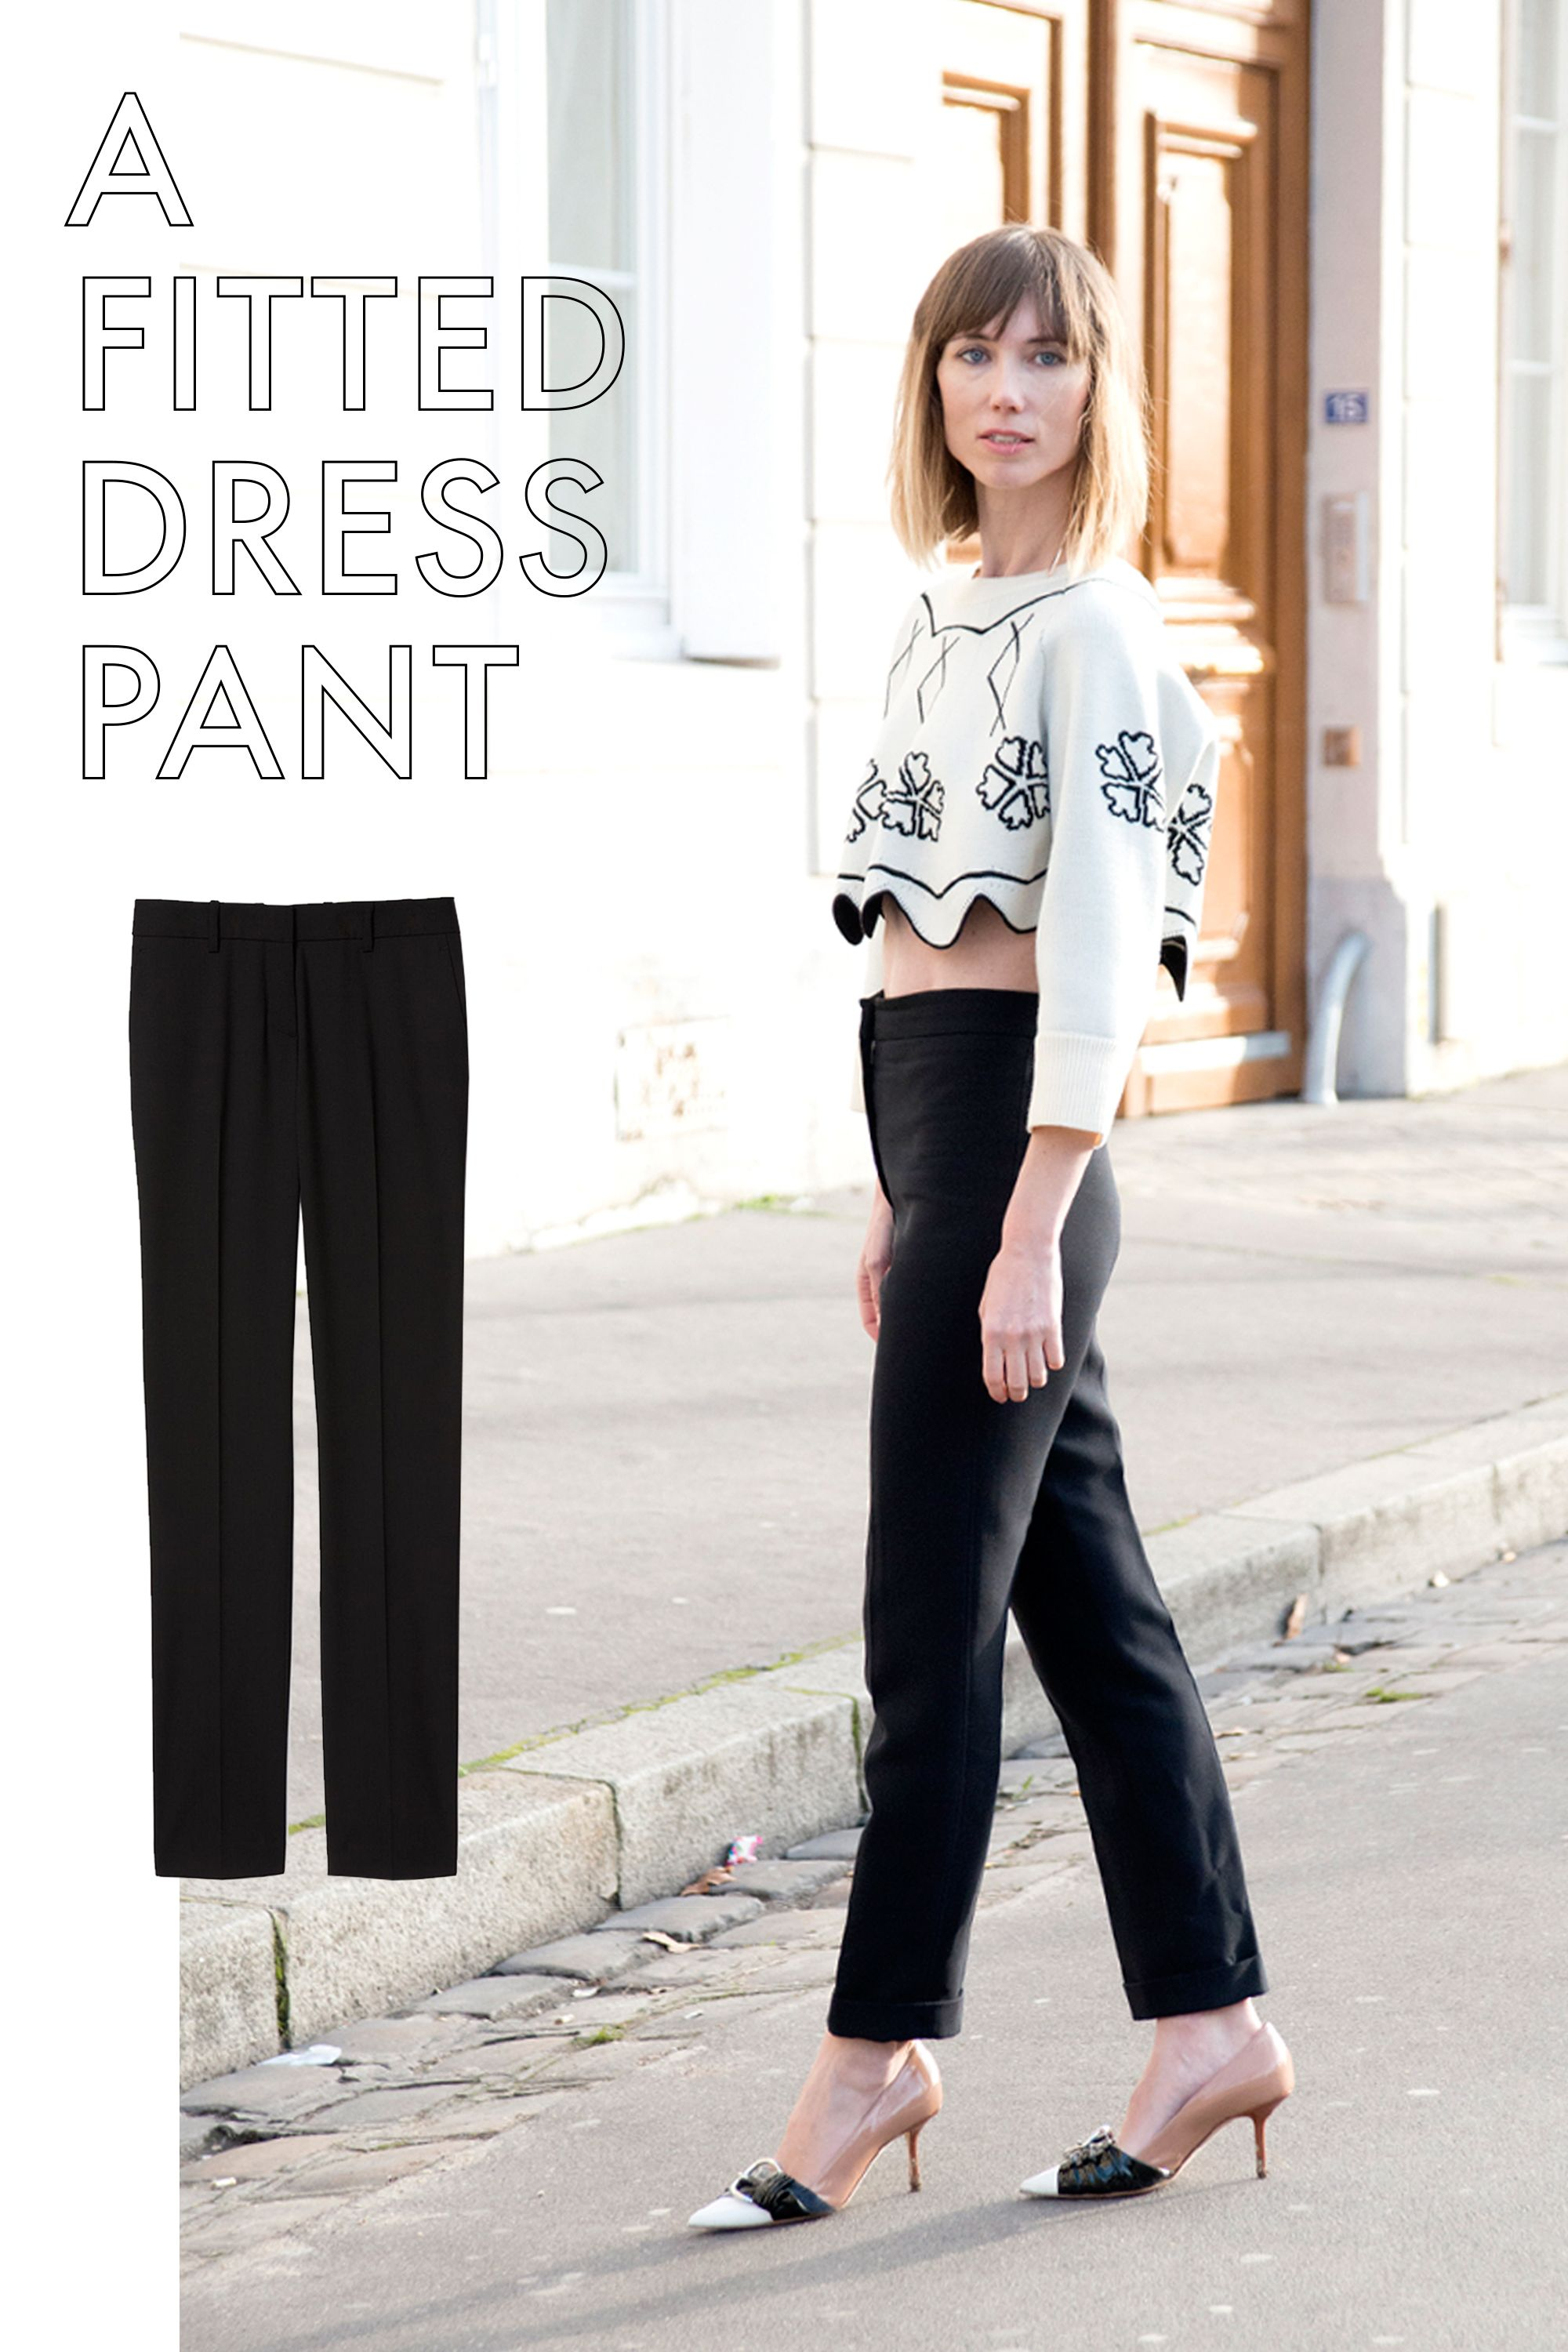 "<p>There are tons of trendy pant styles that I have embraced: track pants, bell bottoms, boyfriend jeans. But there's nothing more tried and true—and appropriate for any occasion—than a well fitted dress pant. Yes, like the pair your parents bought you for your first job interview. Get them tailored.<br></p><p><em>Theory Italian Stretch Wool Slim Pant, $275&#x3B; <a href=""http://www.theory.com/super-slim/F0001212.html?dwvar_F0001212_color=001&cgid=#start=16""></a></em><a href=""http://www.theory.com/super-slim/F0001212.html?dwvar_F0001212_color=001&cgid=#start=16"" target=""_blank""><em>theory.com</em></a></p>"